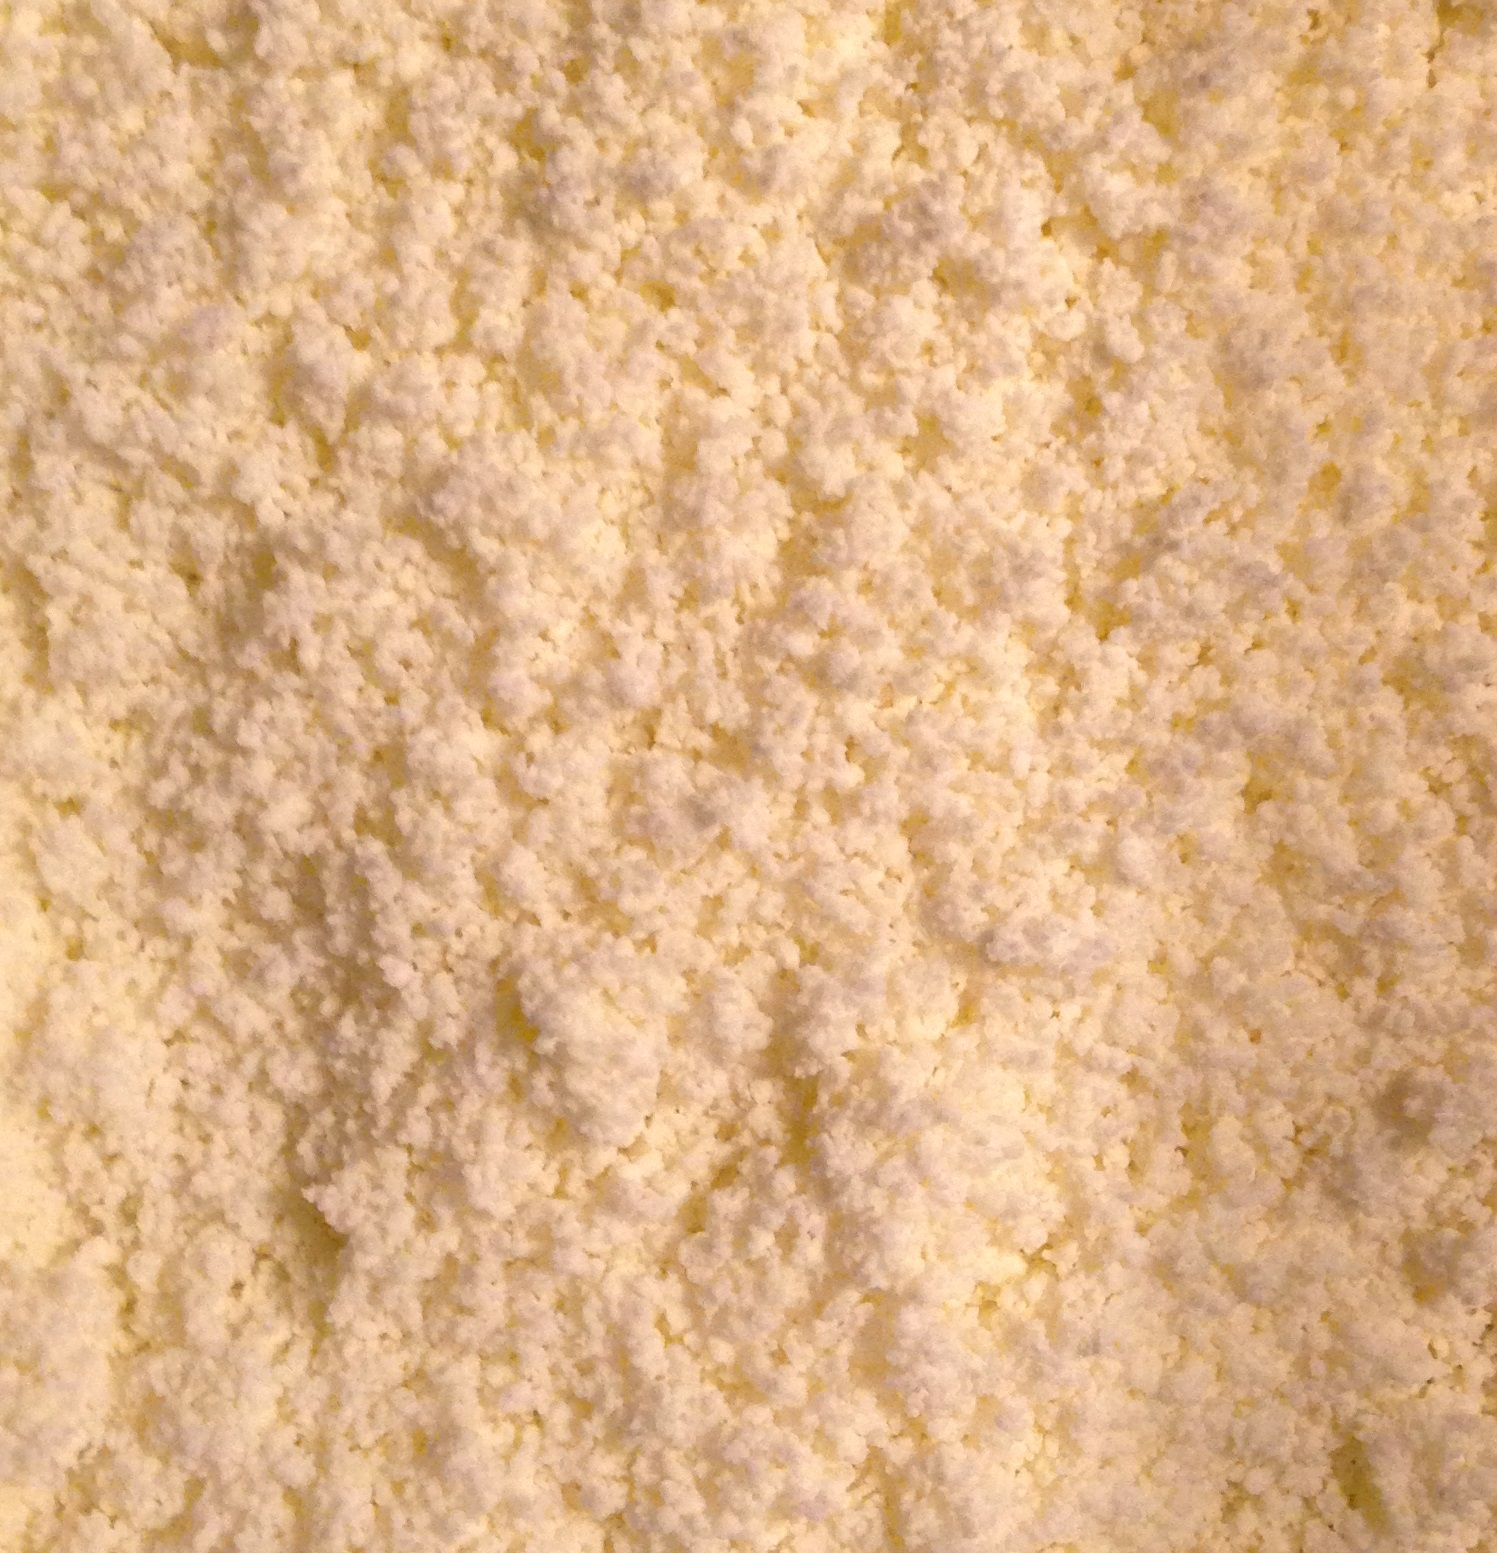 Olive Oil Powdered-cropped